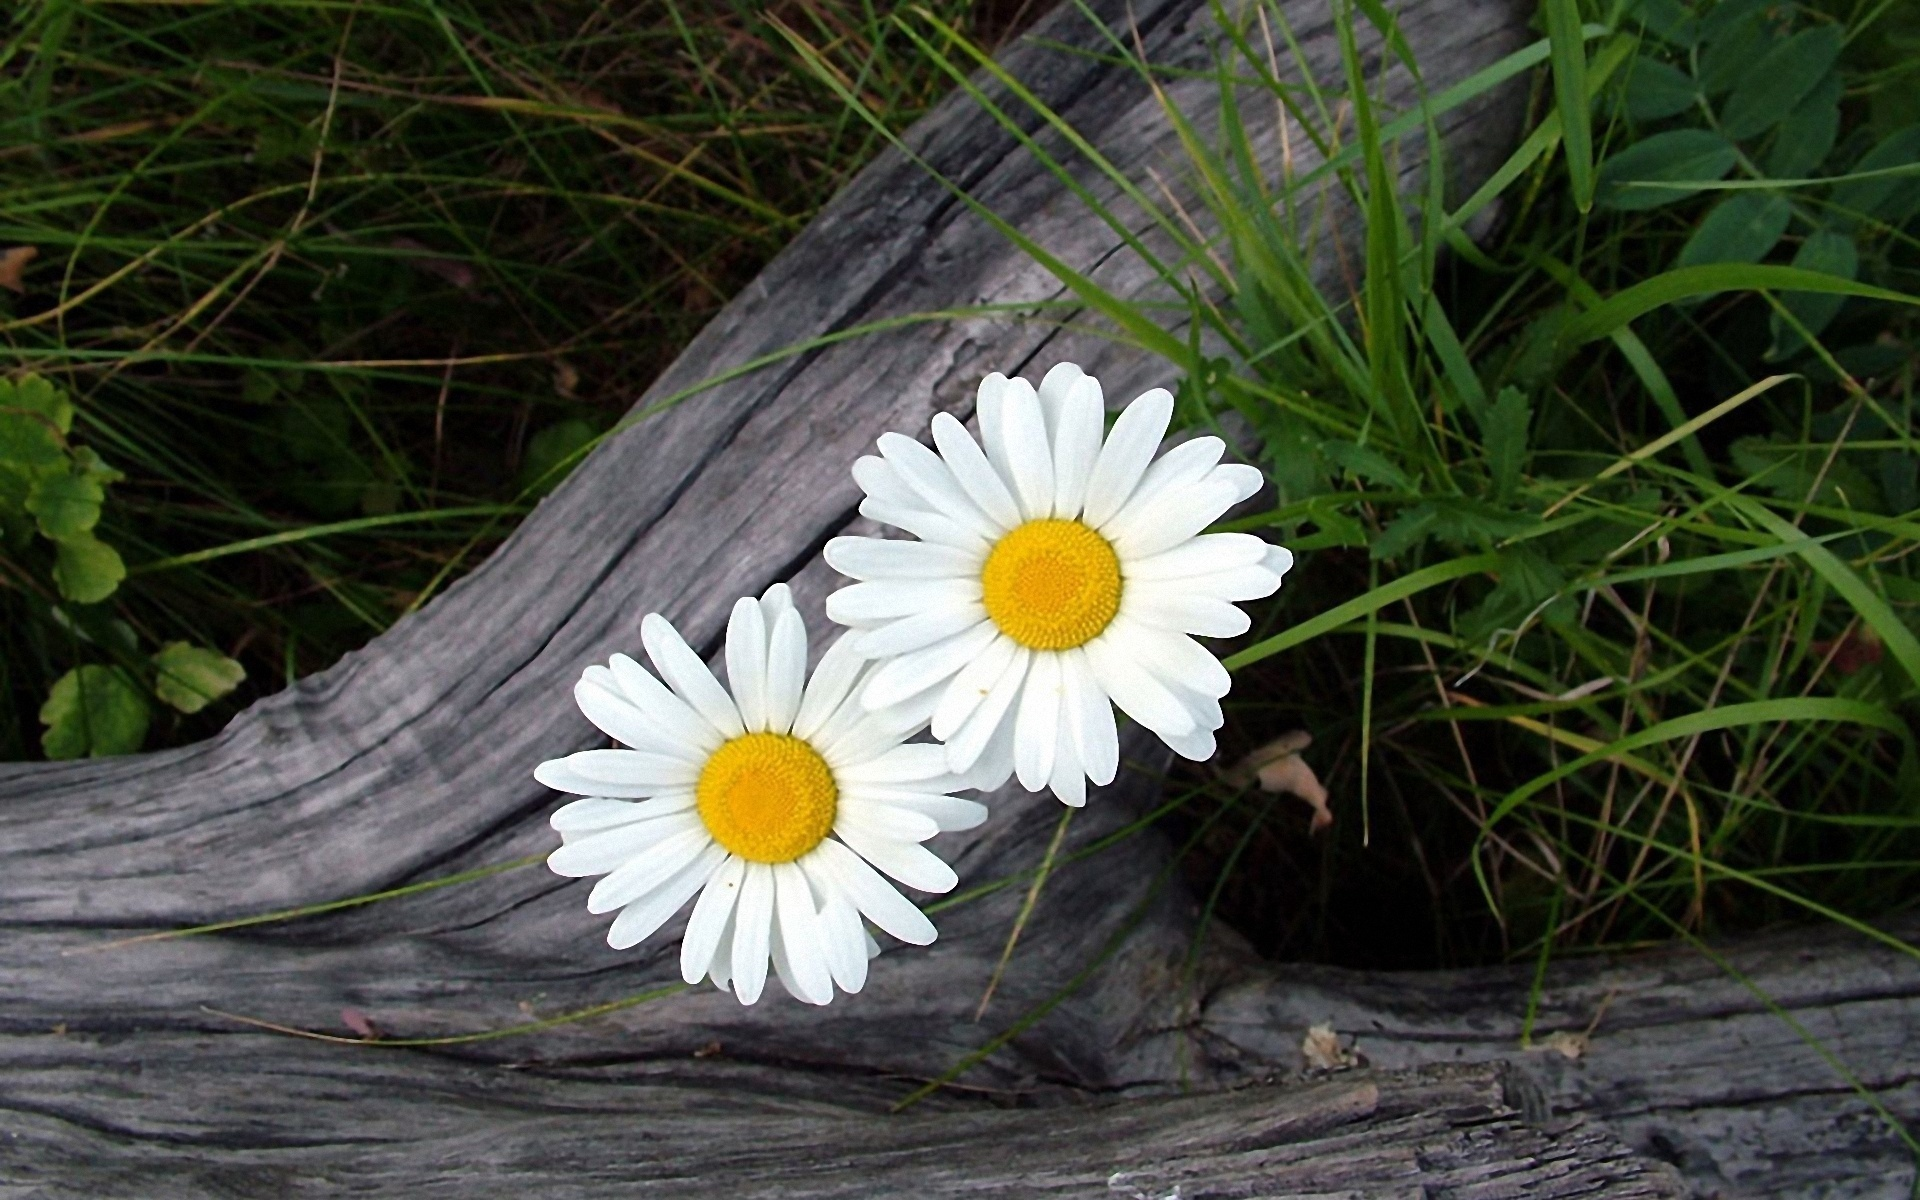 Wallpaper Two White Daisy 1920x1200 Hd Picture Image